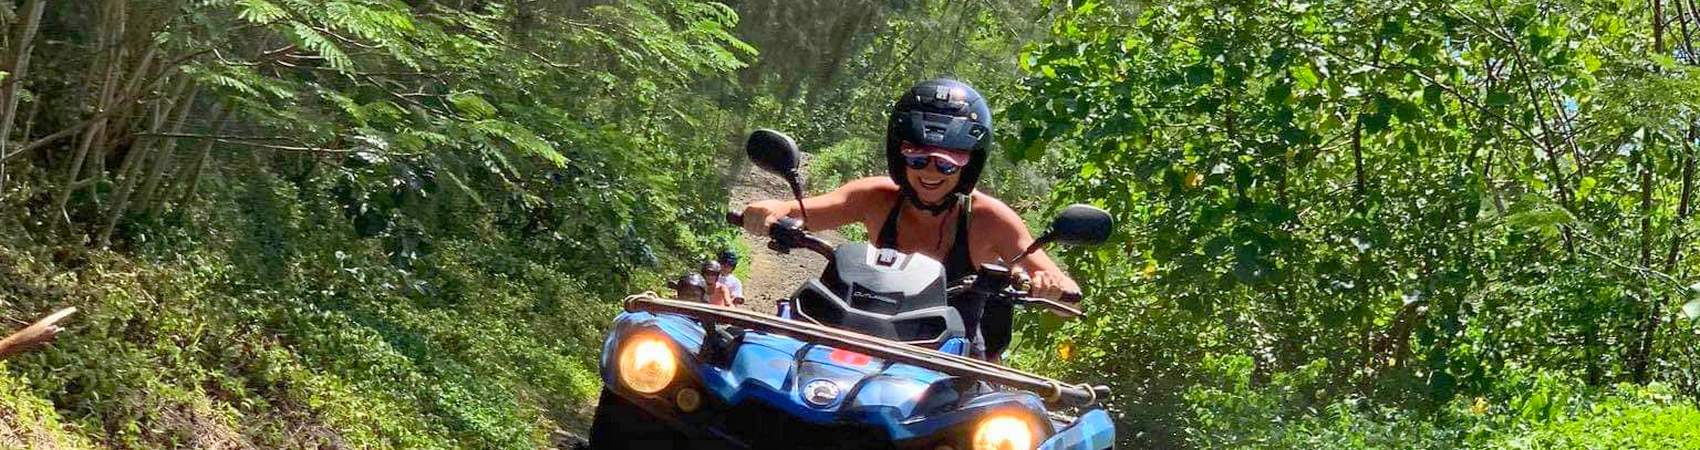 bora-bora-atv-tours-popoti-top-360-view